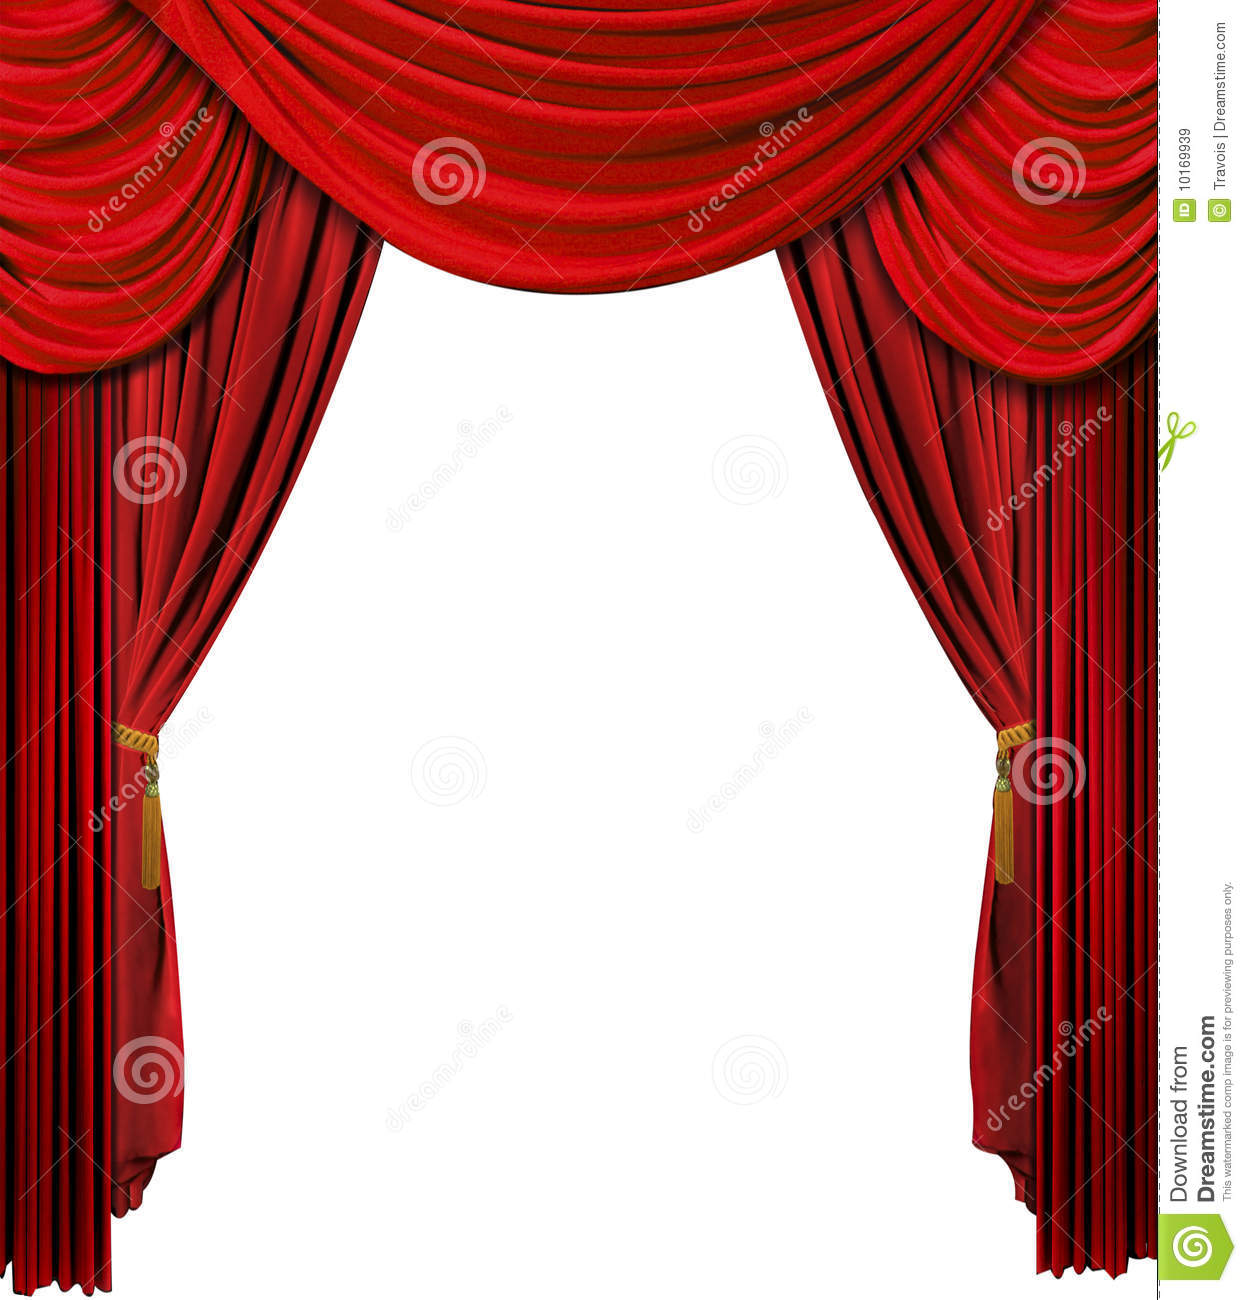 Stage curtain stock image image of concert seats show 10169939 - Images of curtans ...